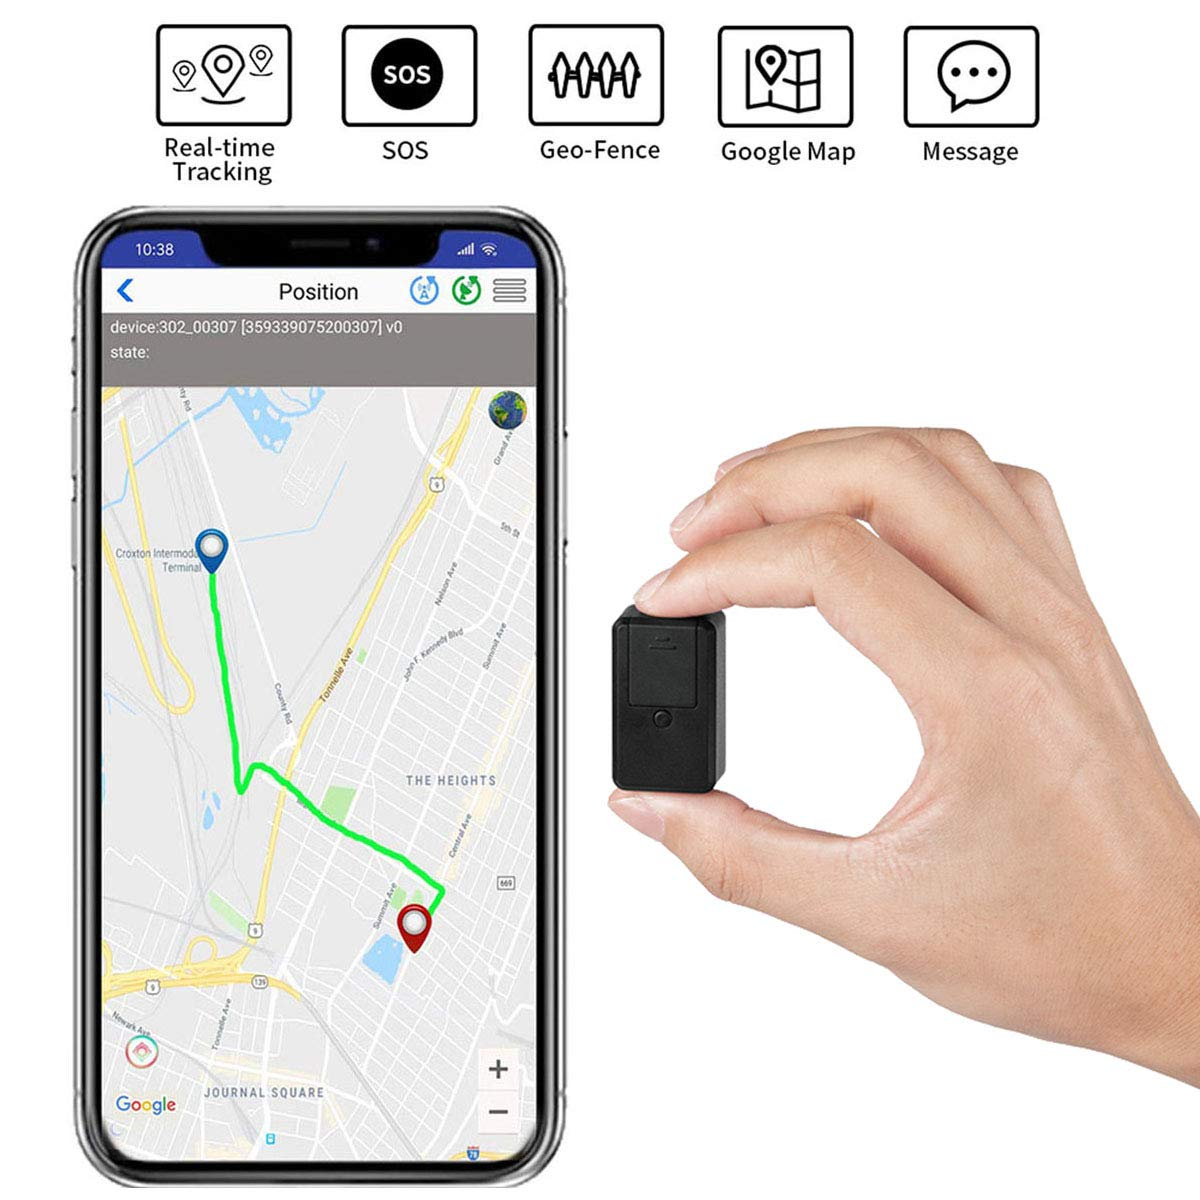 Mini GPS Tracker Portable SOS 2G GPS Location Tracker Real Time Tracking with Magnetic for Vehicles Kids Dogs Cats Keys Motorcycles Pets Car by DICPHIL